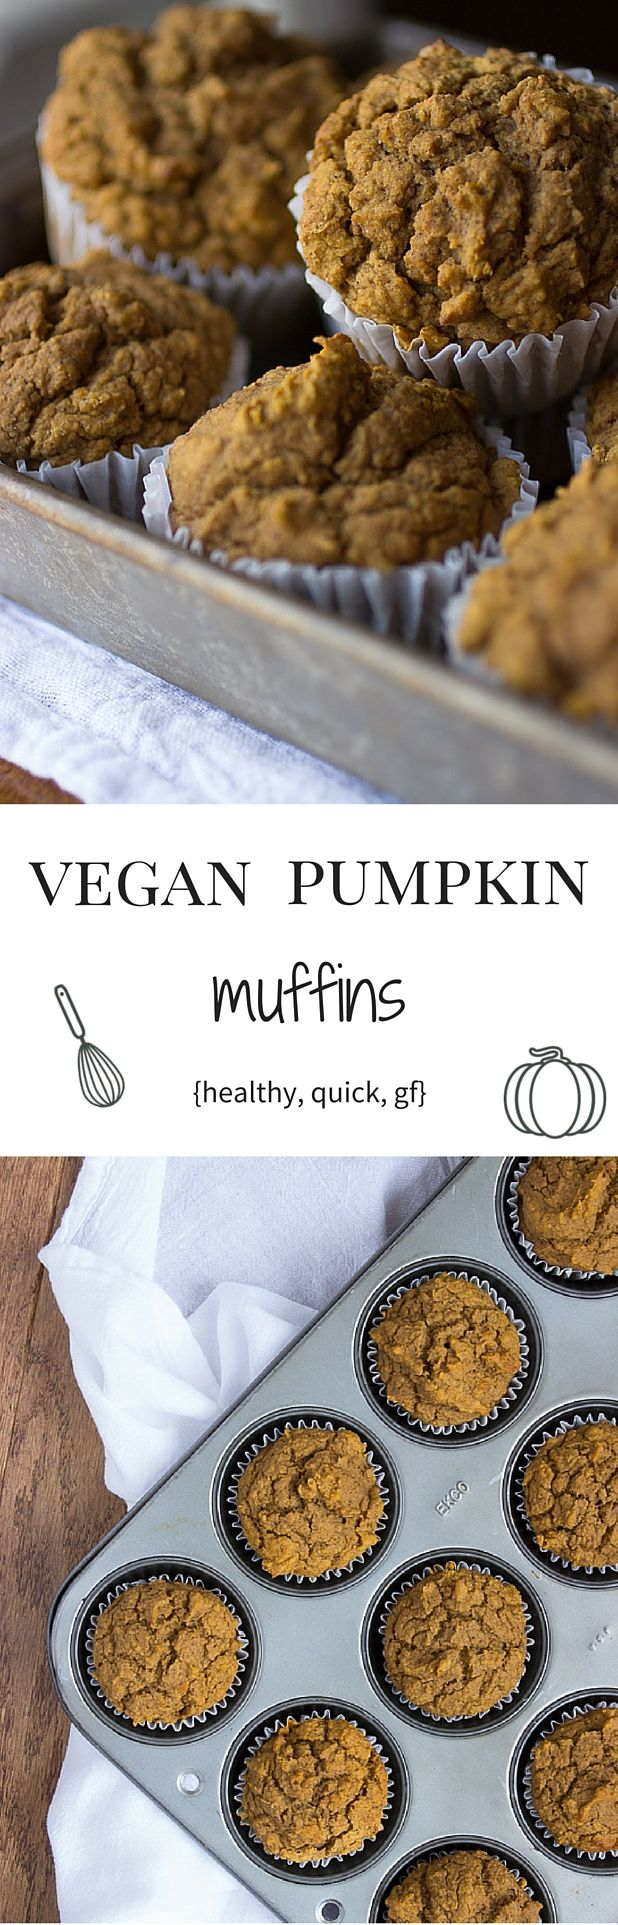 'tis the season! Discover our healthy vegan pumpkin muffins with a gluten free option. No white sugar!